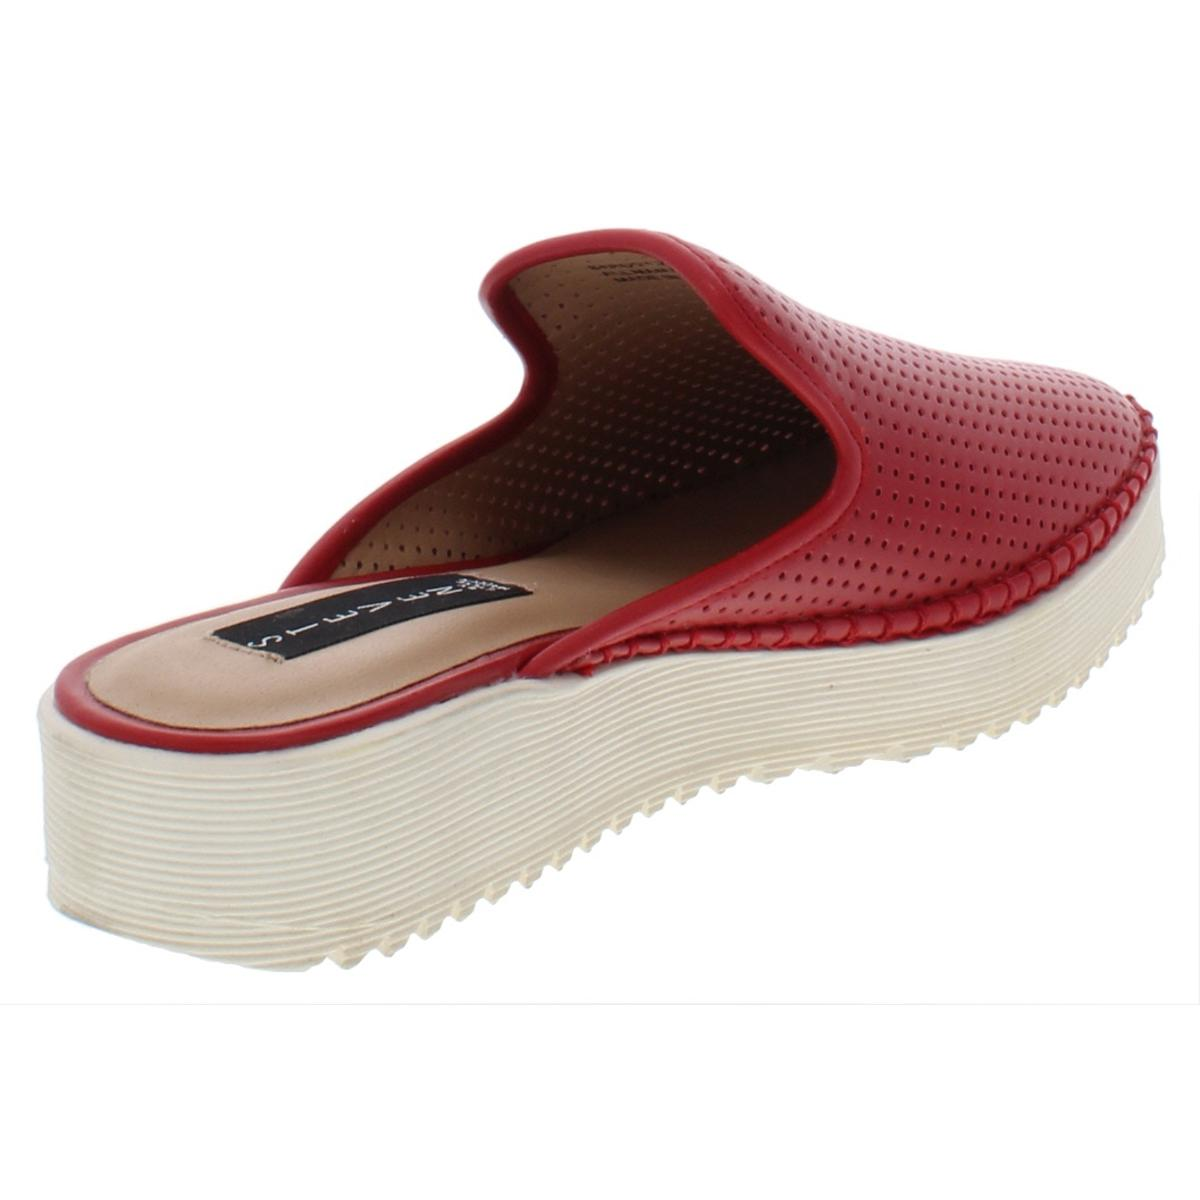 Steven-By-Steve-Madden-Womens-Bardot-Slip-On-Loafer-Slides-Shoes-BHFO-1157 thumbnail 6